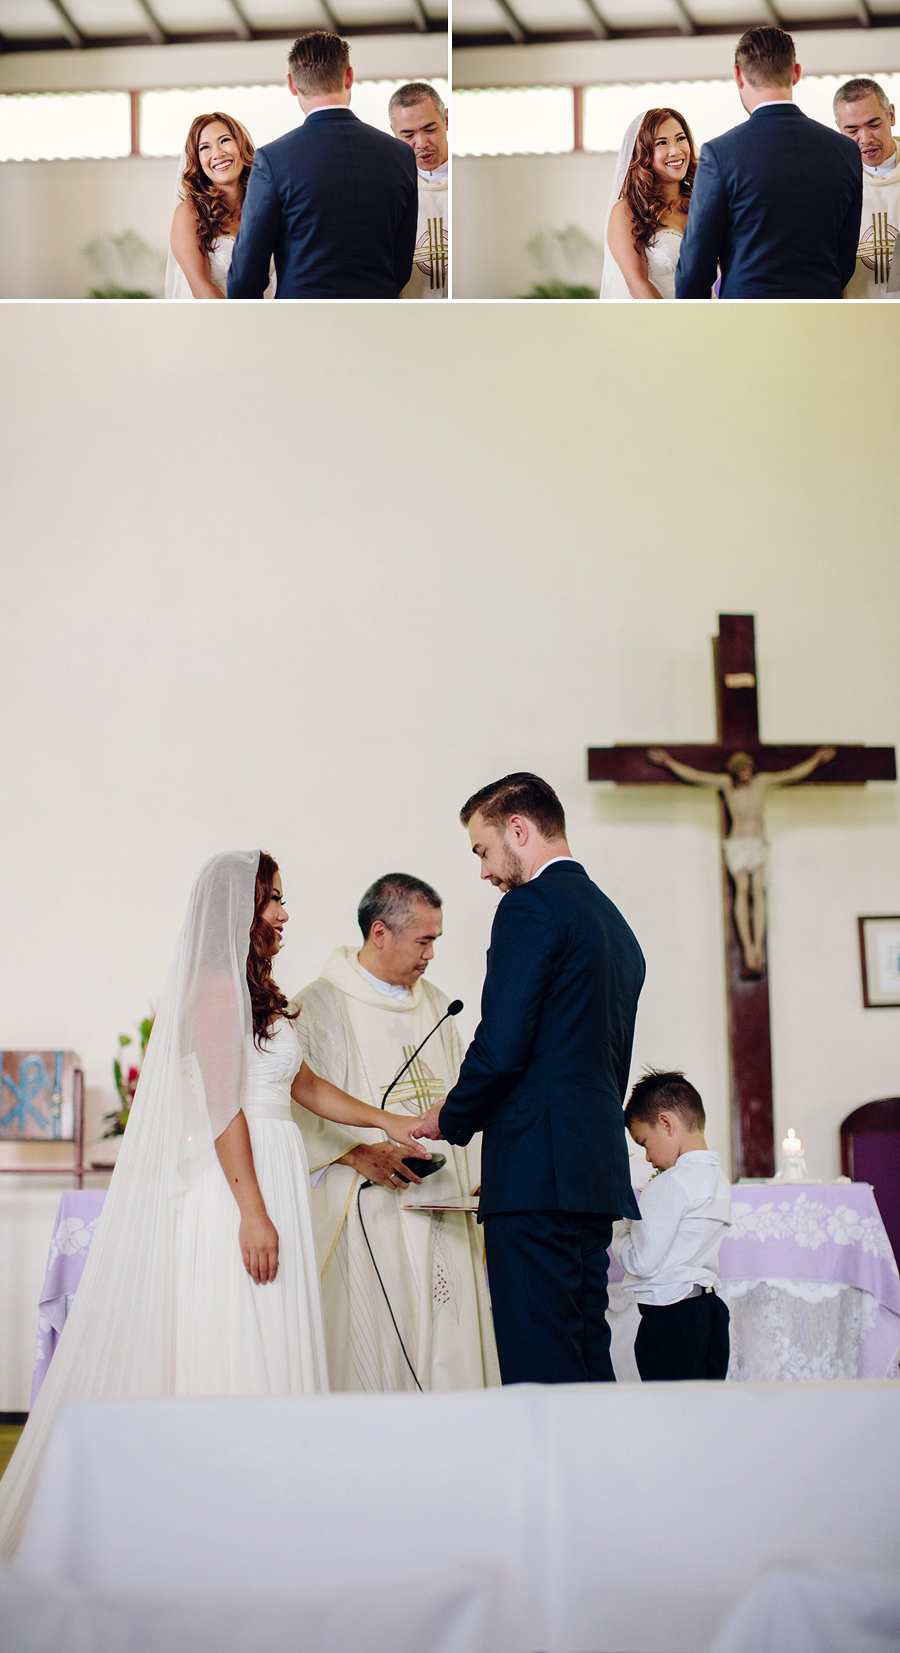 Filipino Wedding Photography: Exchanging rings